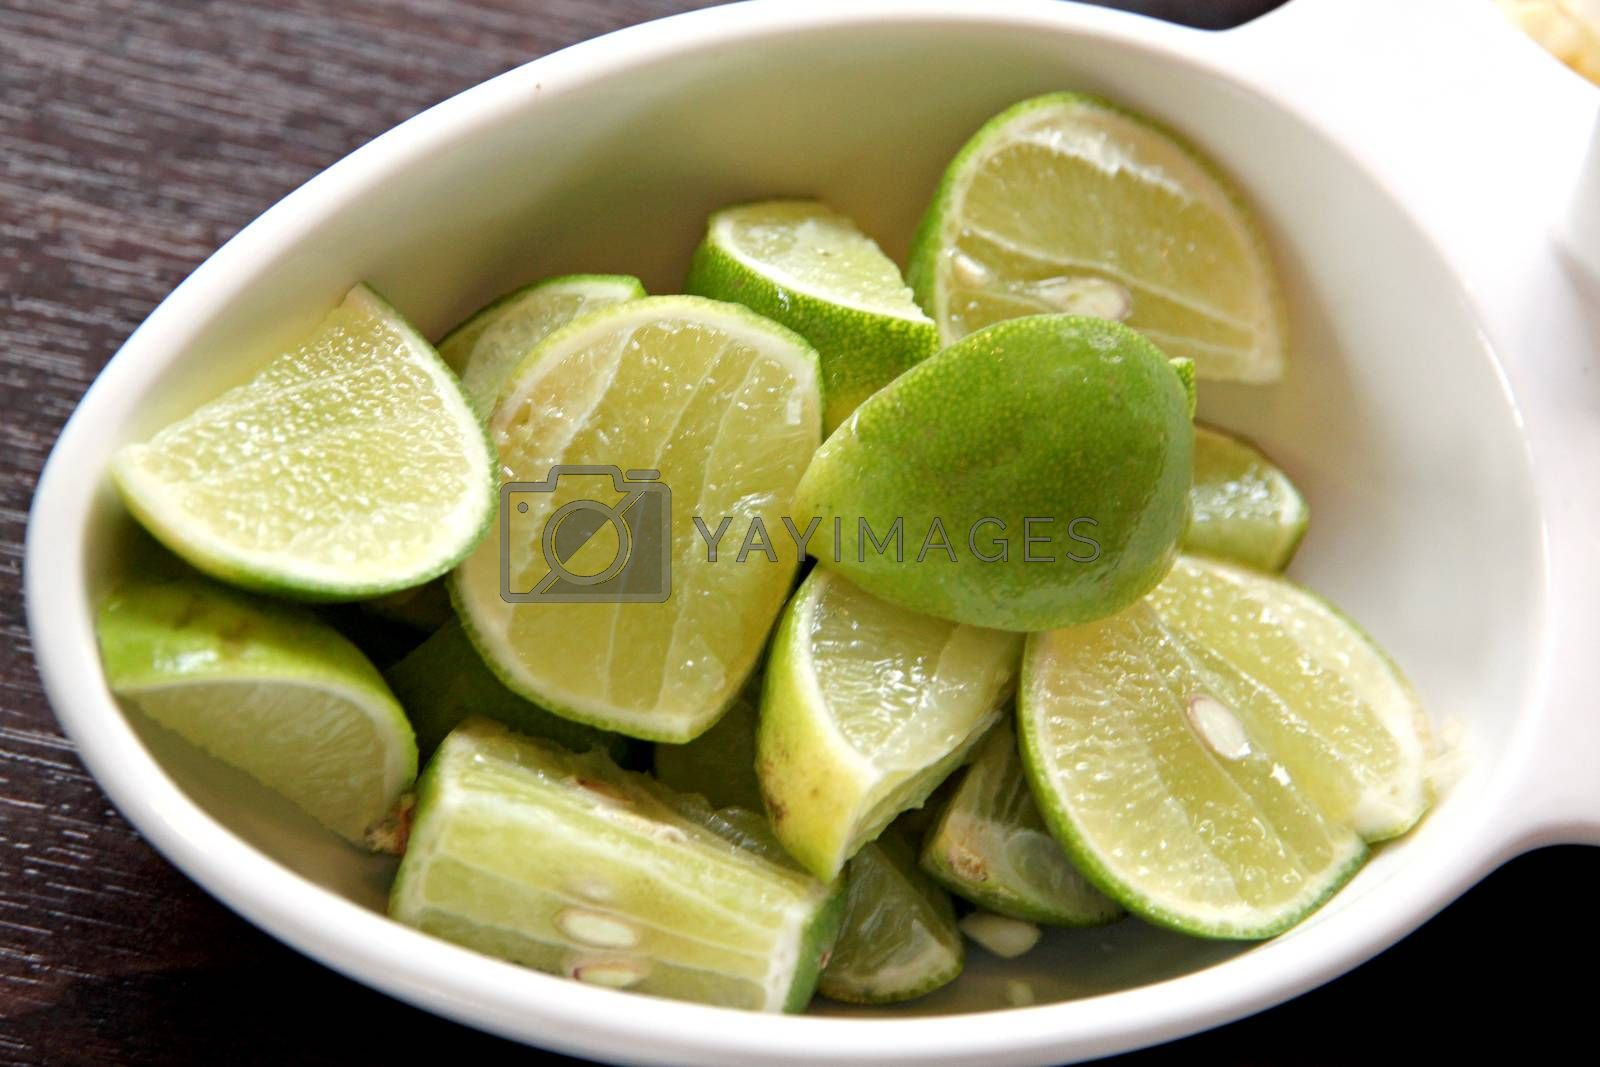 The Picture focus Slide lemon in white Dish.